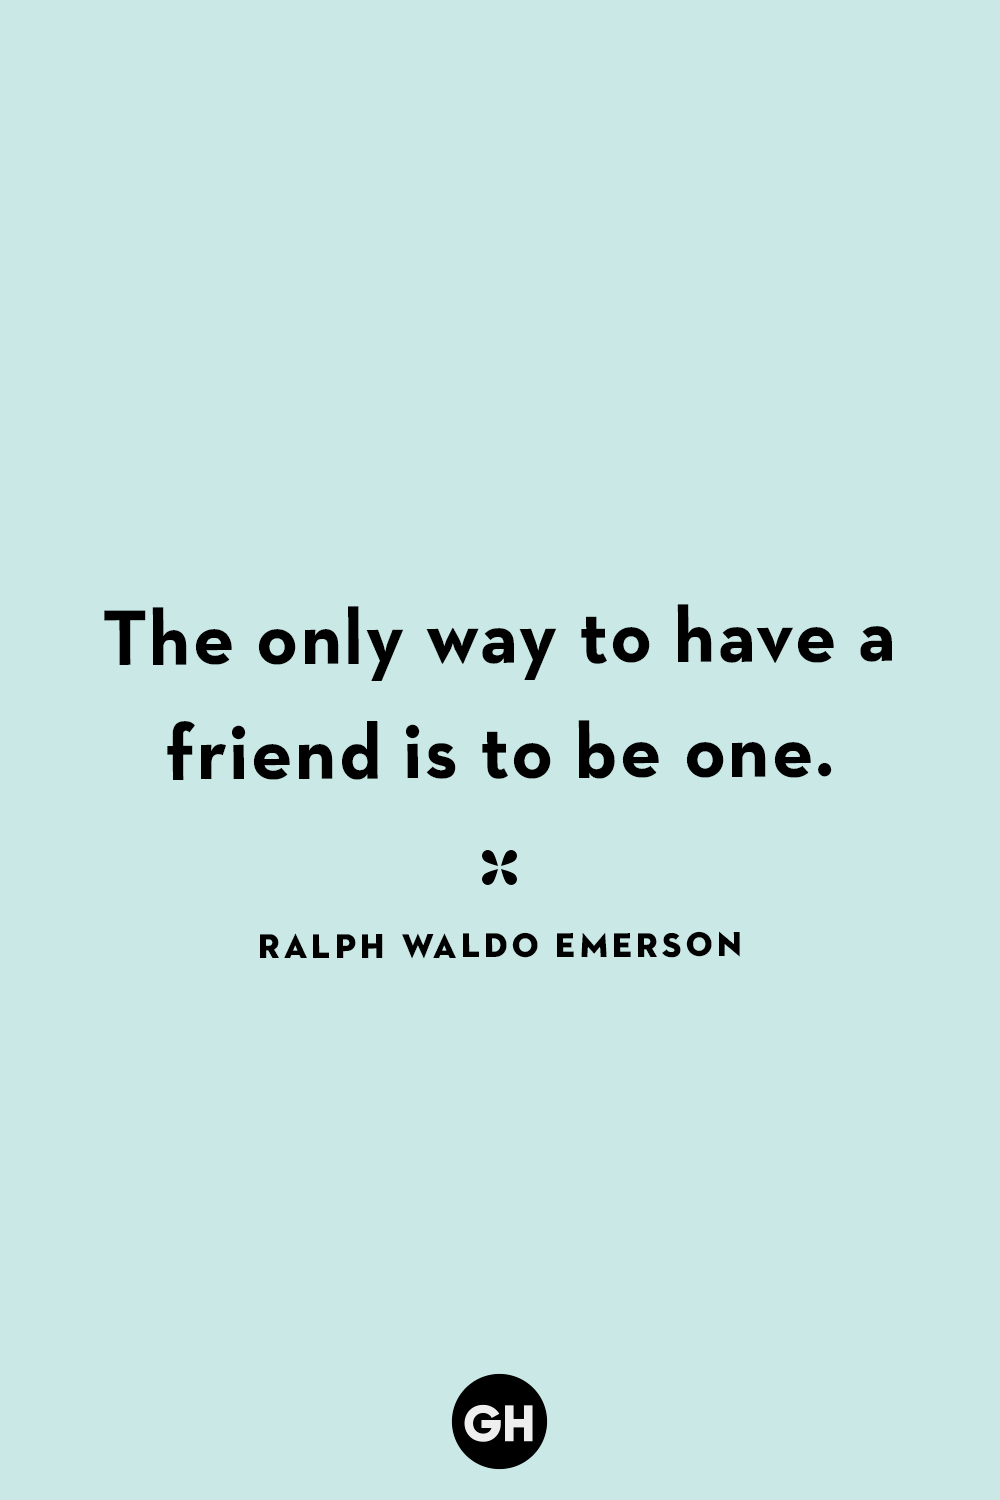 40 Short Friendship Quotes for Best Friends - Cute Sayings ...